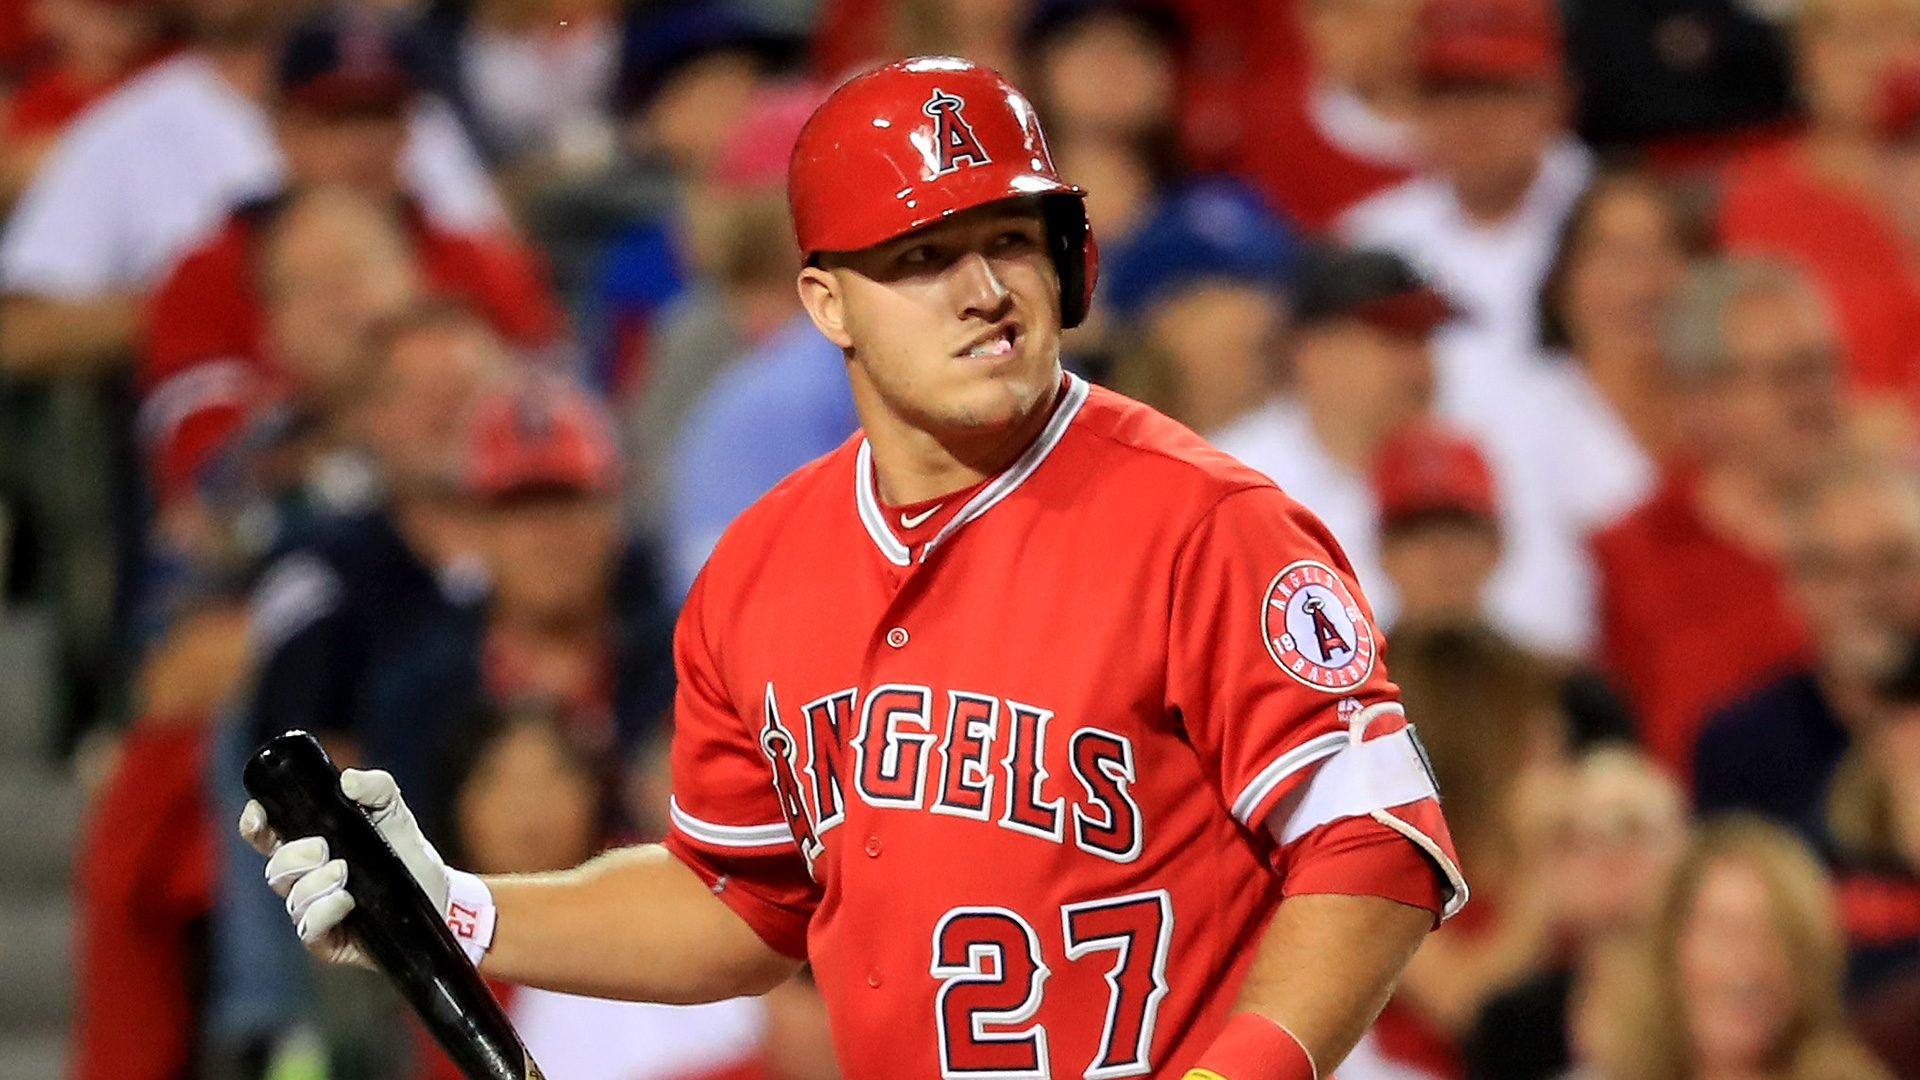 Mike Trout has thumb ligament surgery, likely out 6-8 weeks